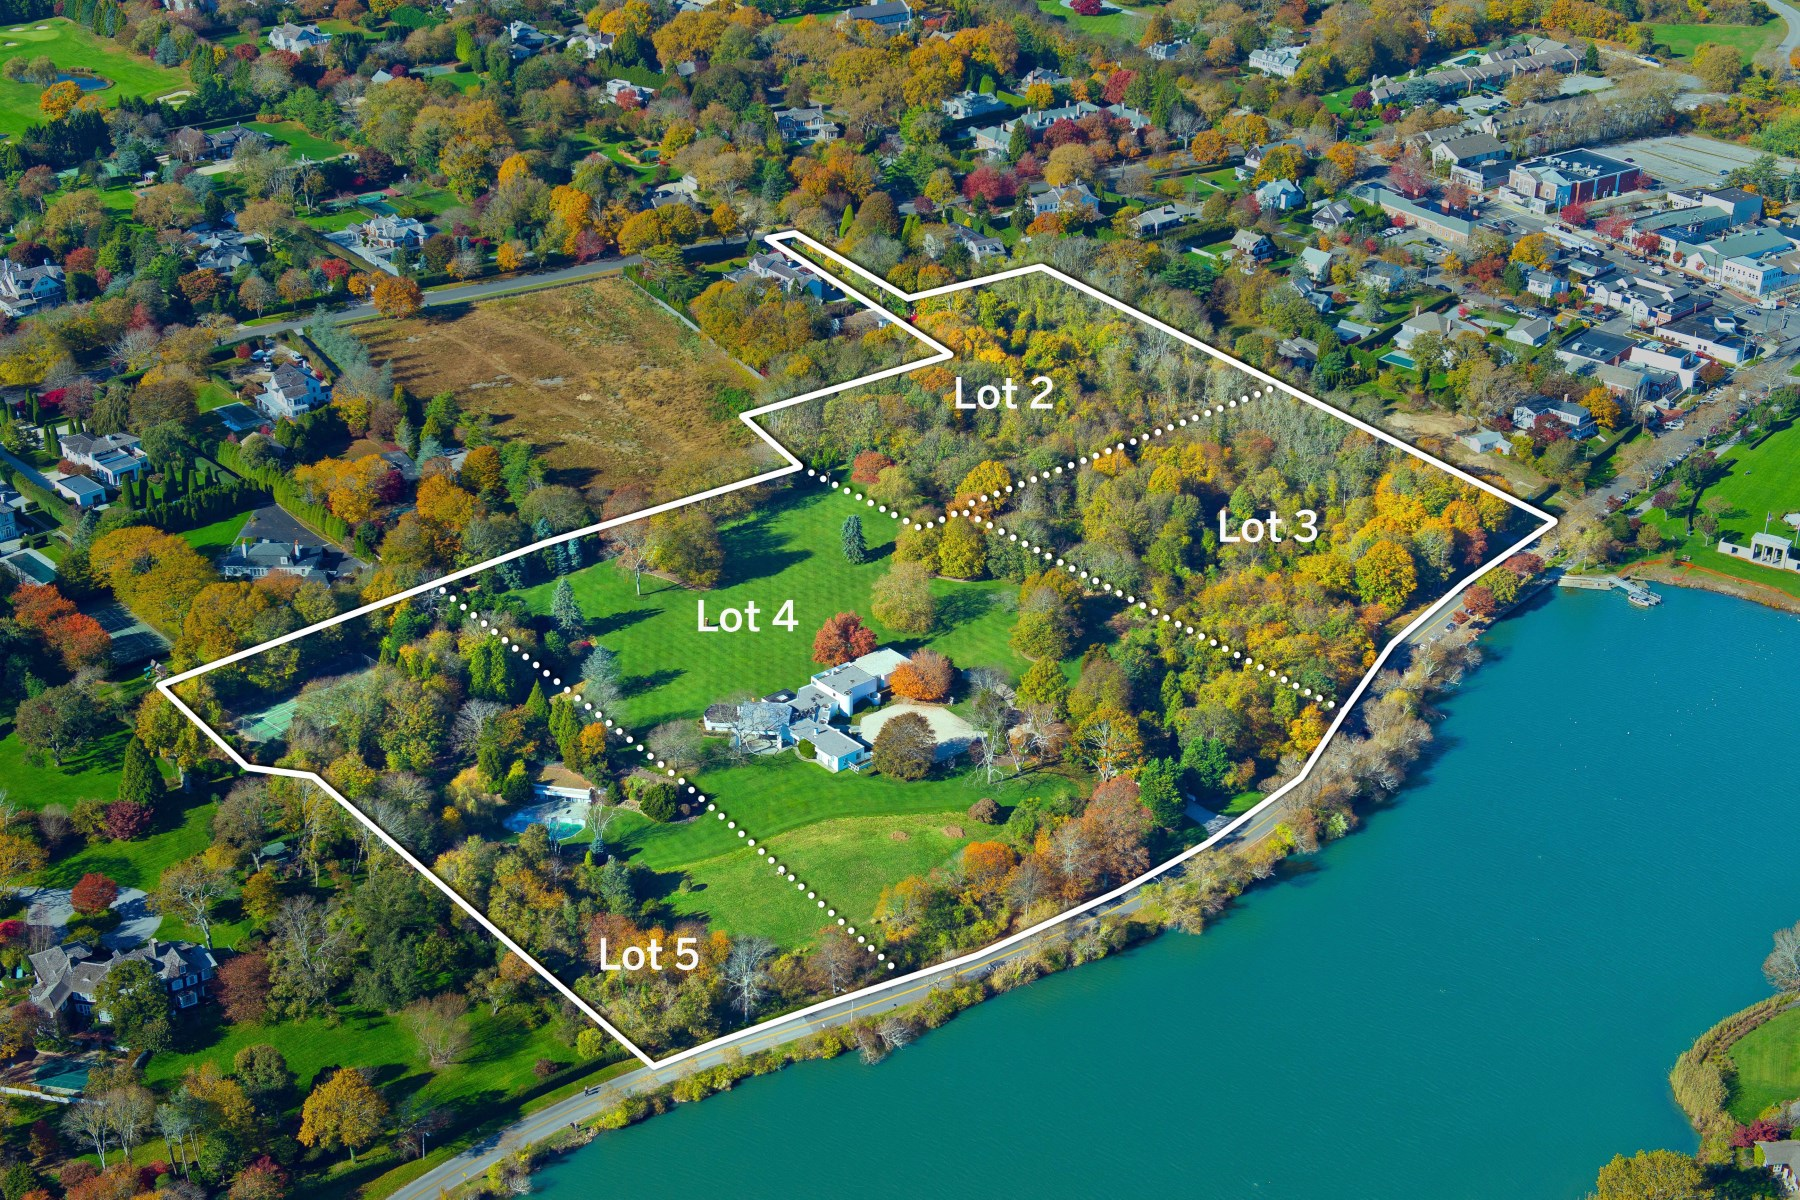 Single Family Home for Active at Overlooking Lake Agawam 111, 137, 153 Pond Lane & 52 First Neck Lane 4 properties combined Southampton, New York 11968 United States